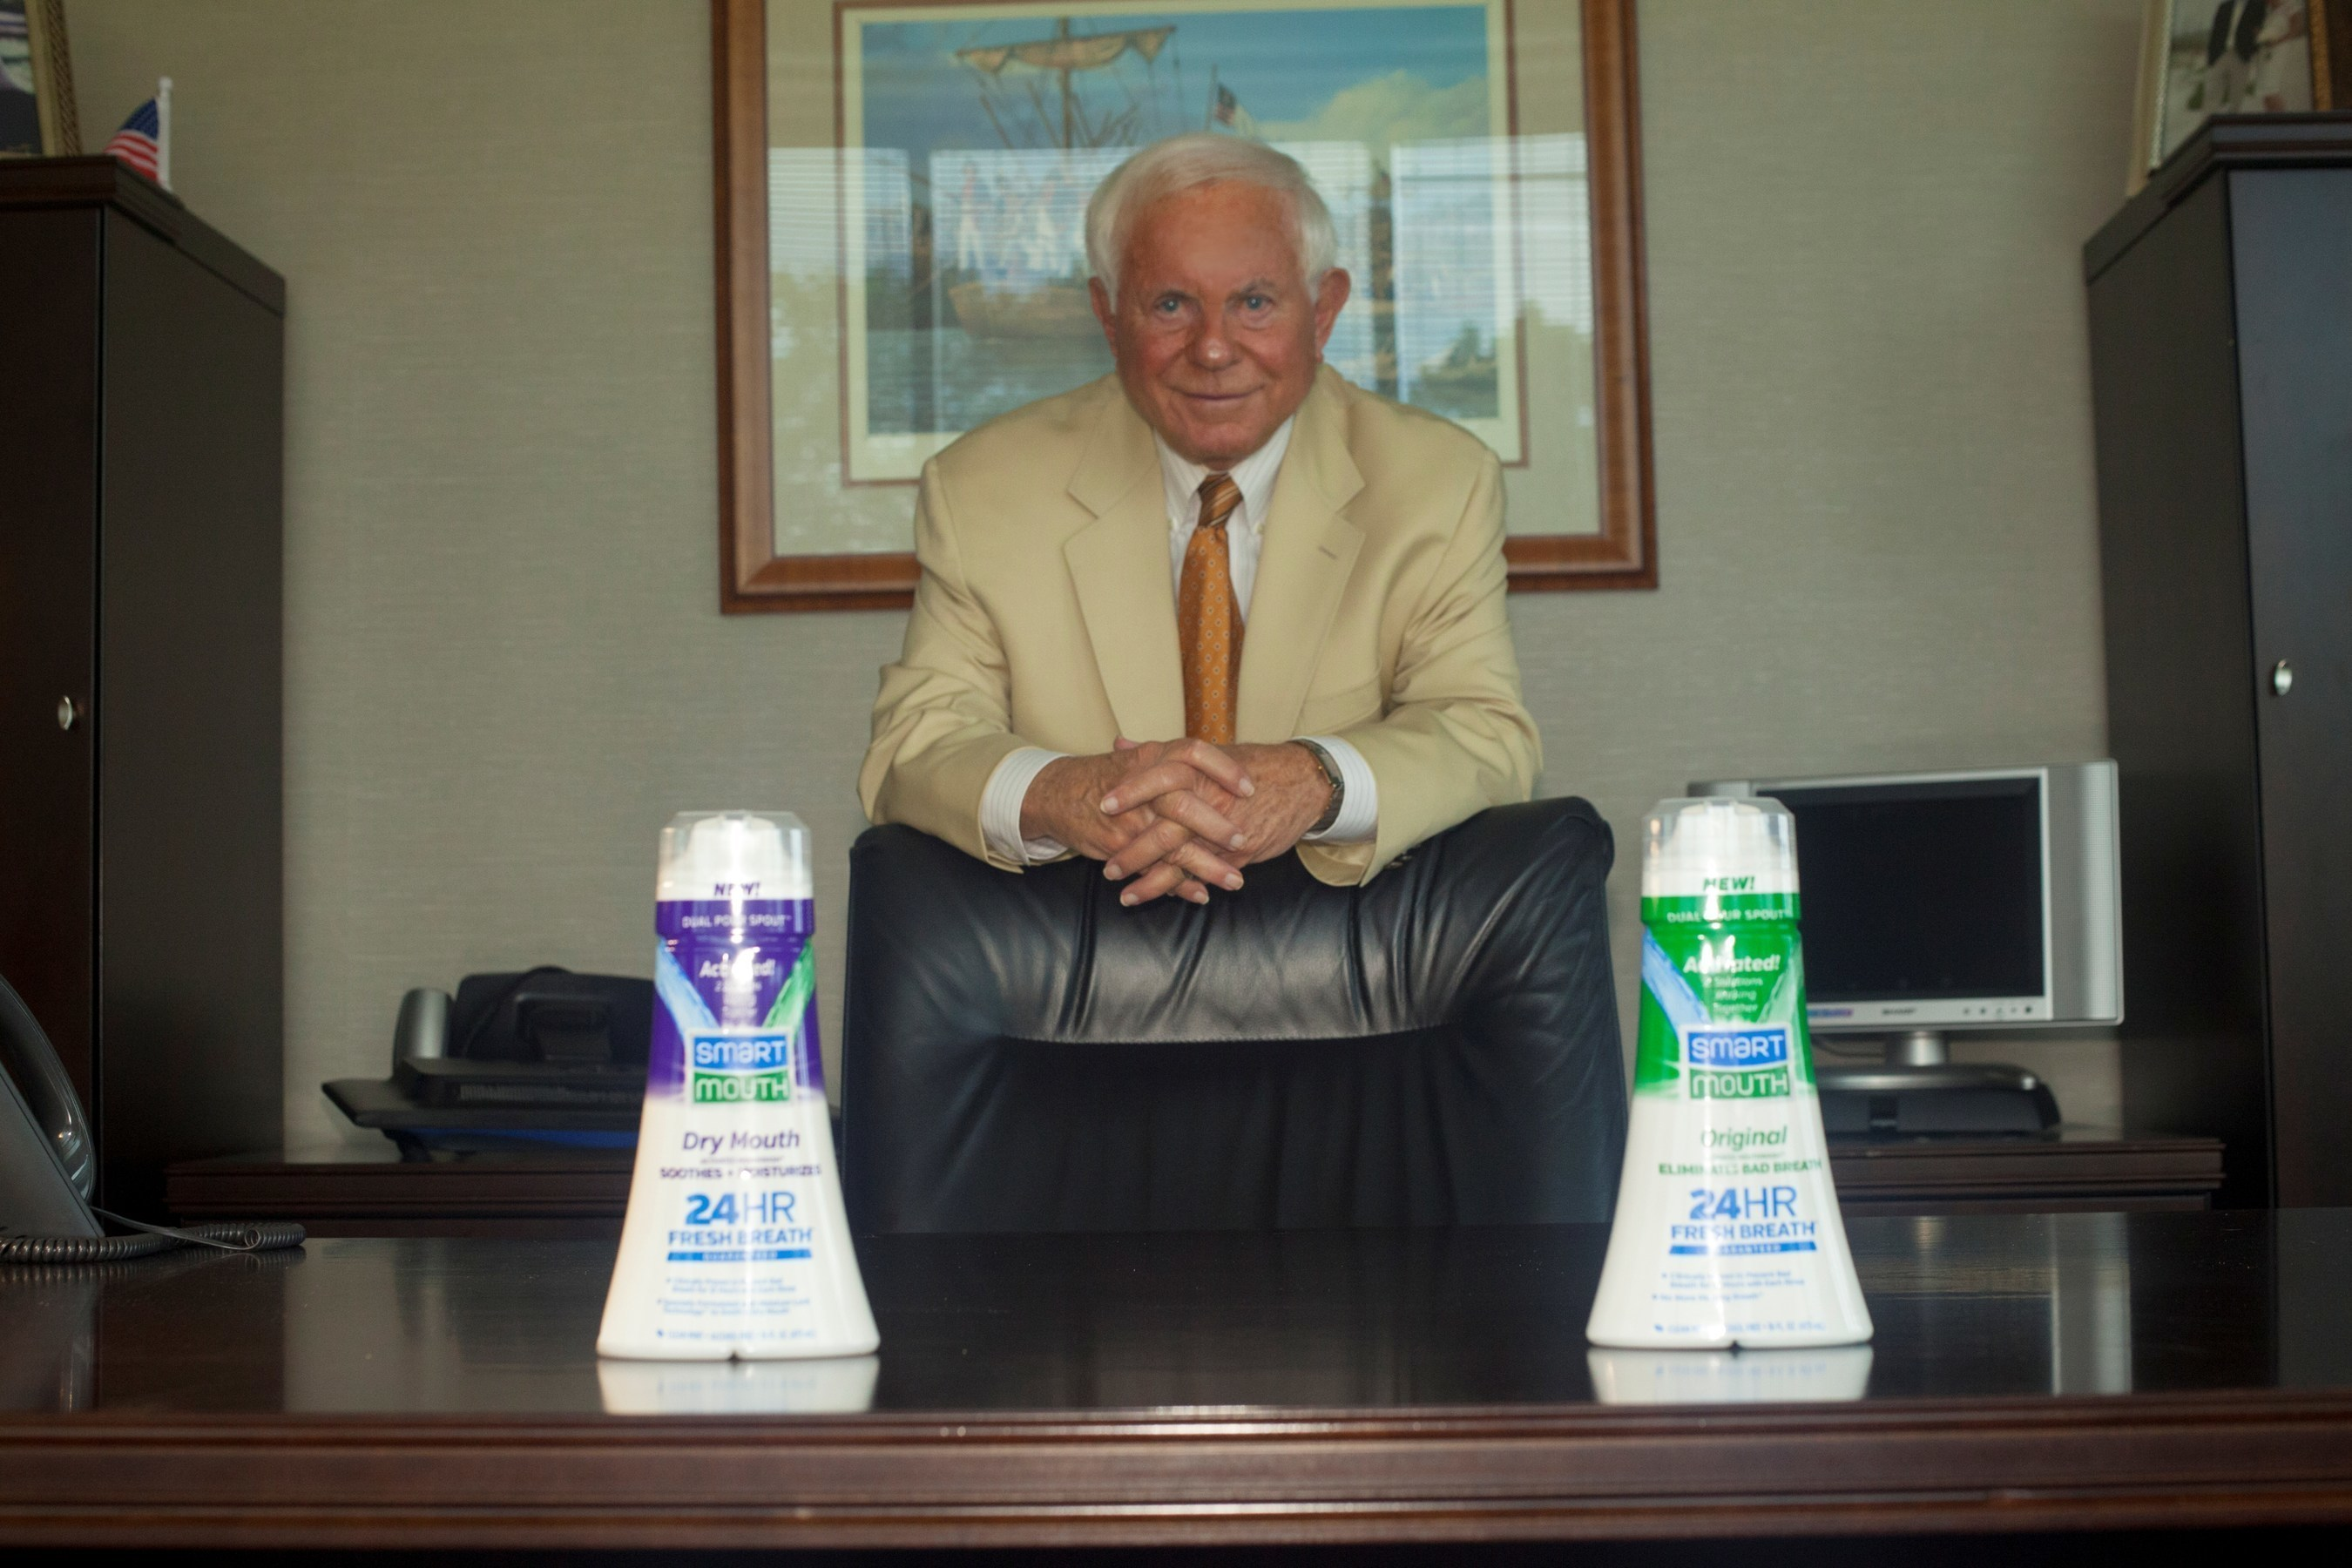 """Ray Barrett, chairman of the board of Triumph Pharmaceuticals and its premier brand SmartMouth Oral Rinse, is known as the """"entrepreneur's entrepreneur"""" and has a successful track record in the medical and consumer products markets."""